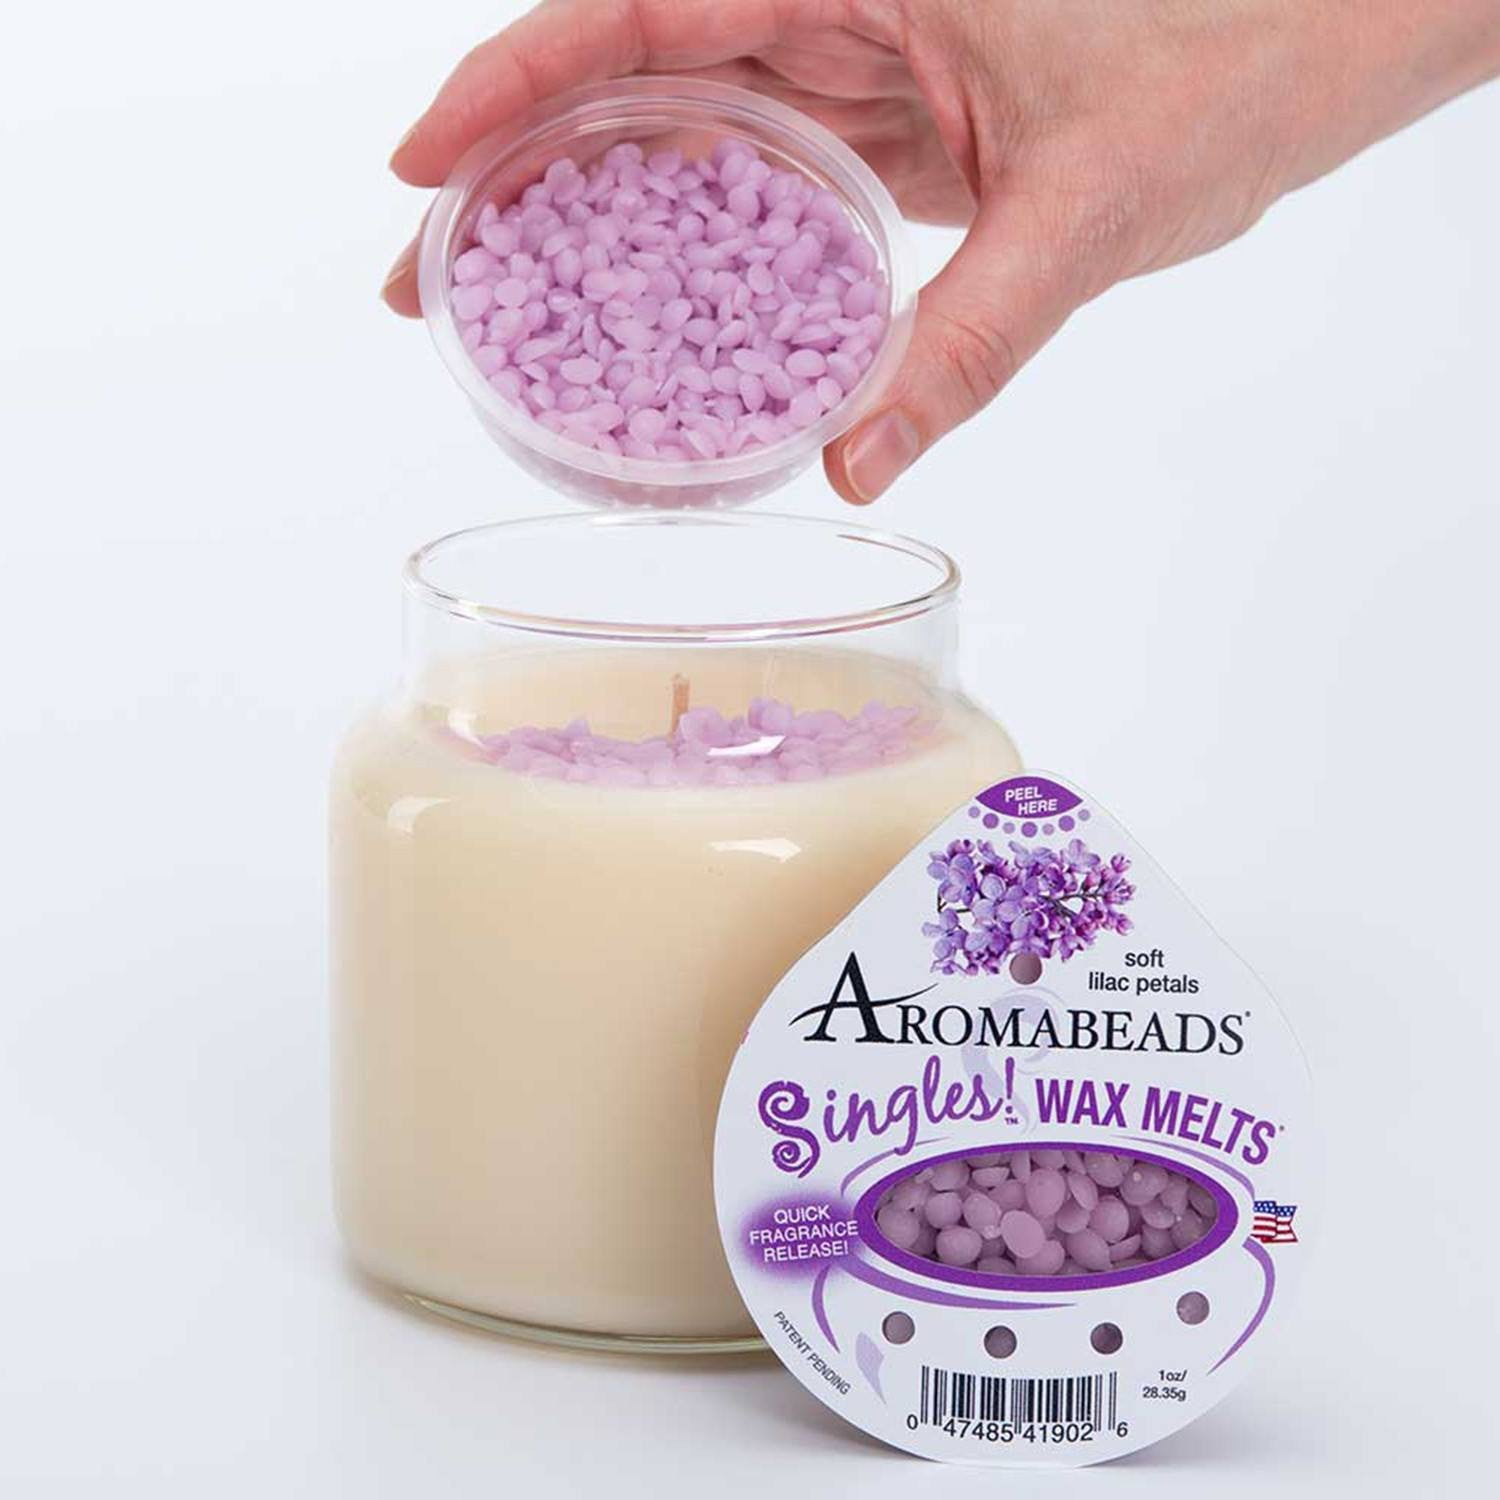 Aromabeads Singles Blue Sapphire Scented Wax Melts Melts Candlemart.com $ 1.49